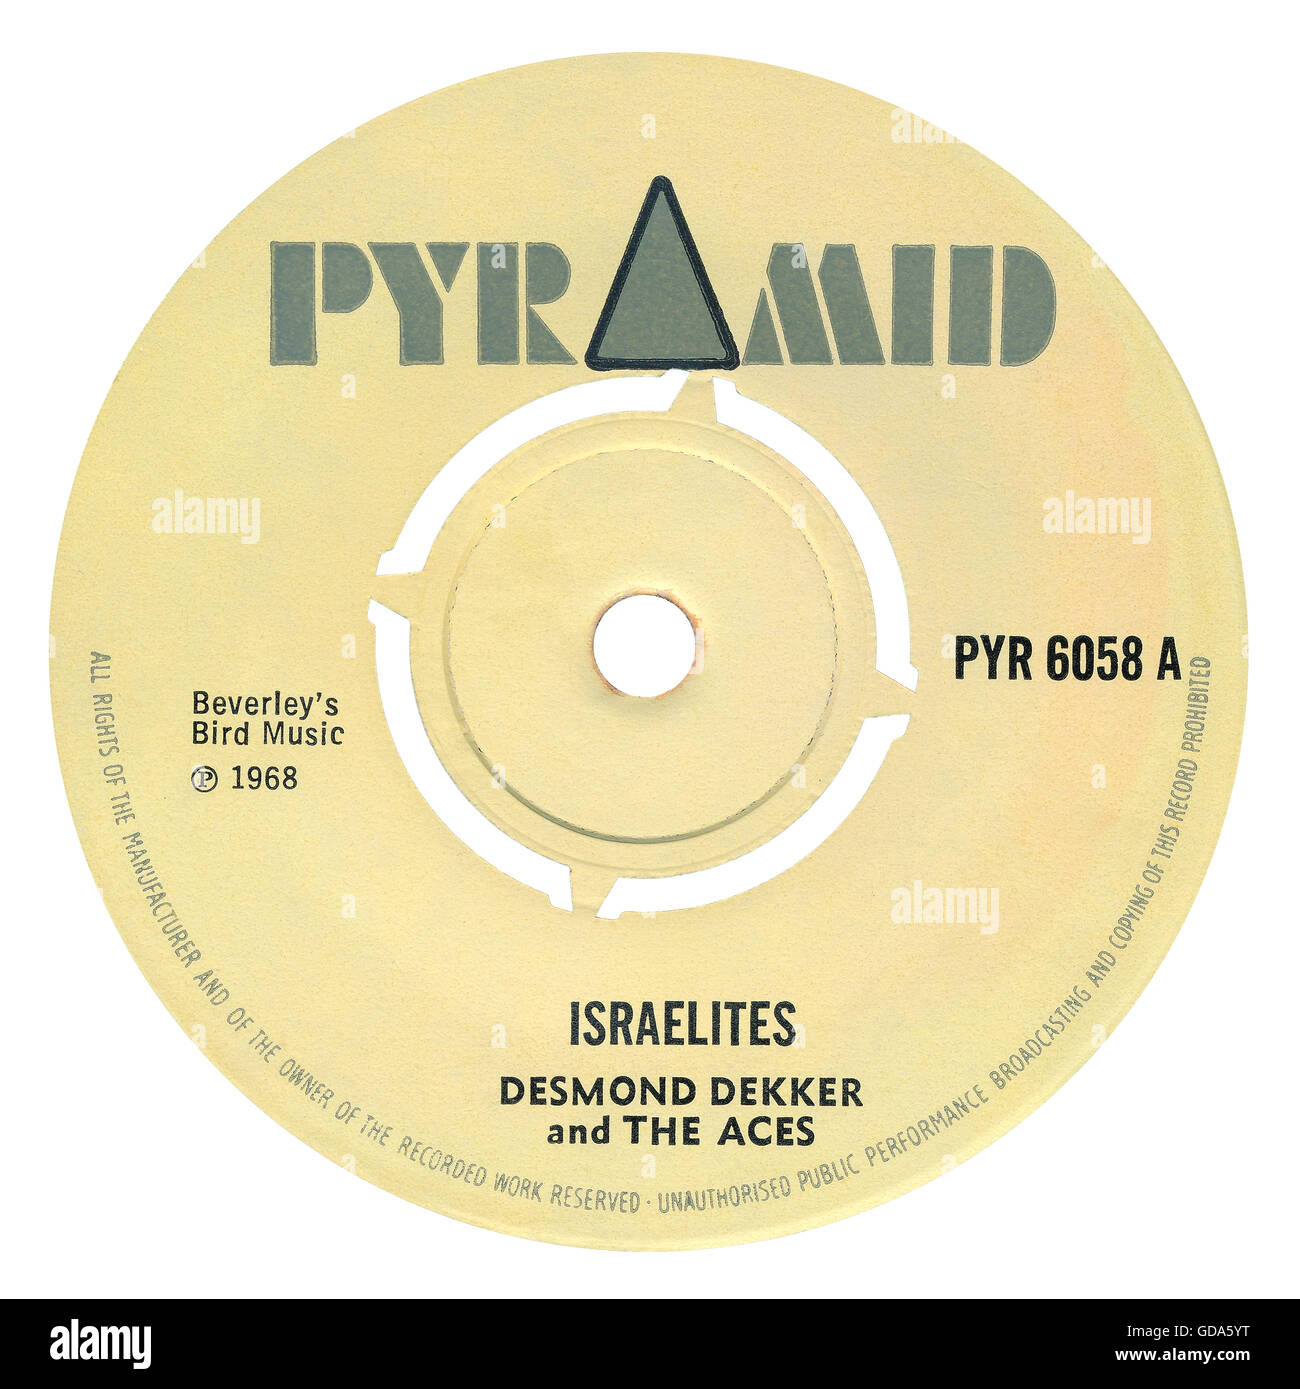 45 RPM 7' UK record label of the reggae song Israelites by Desmond Dekker and the Aces on the Pyramid label - Stock Image